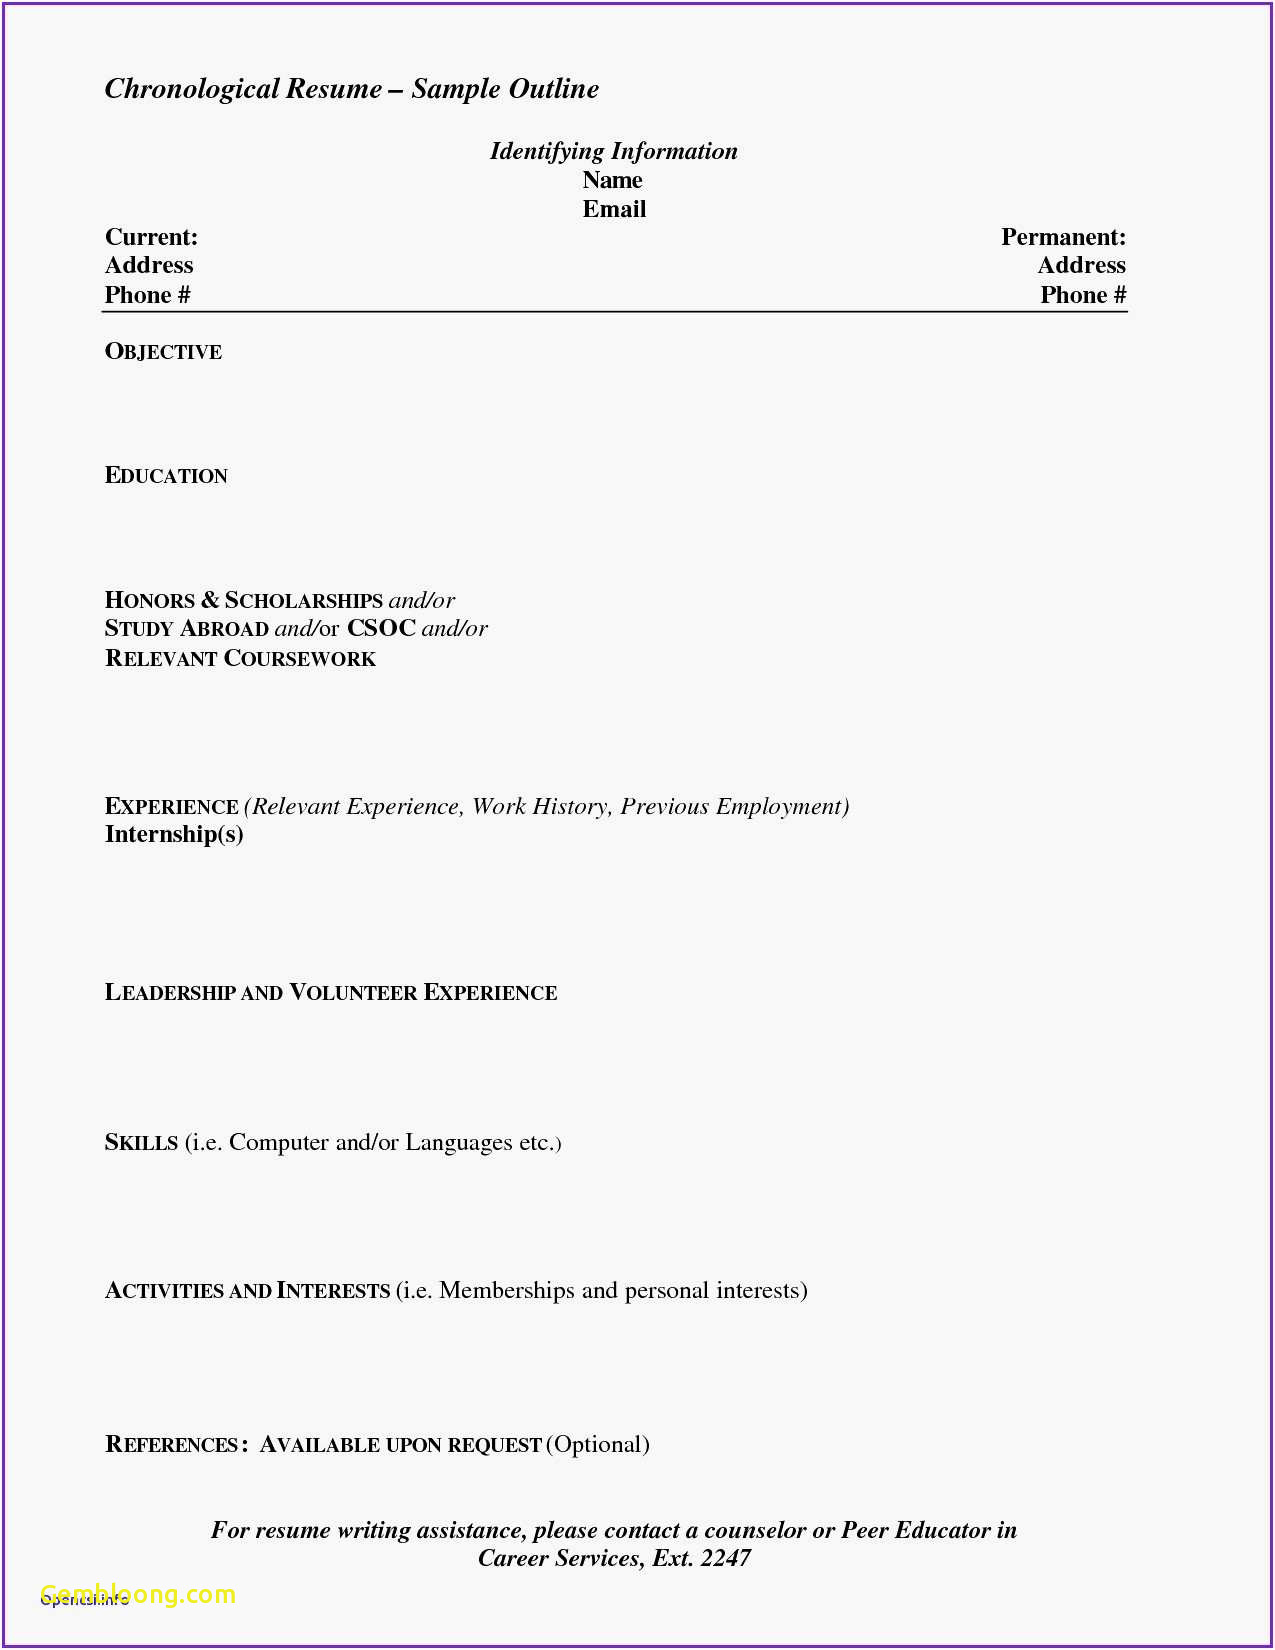 Best Place to Post Resume - Download New Resume Writing Panies